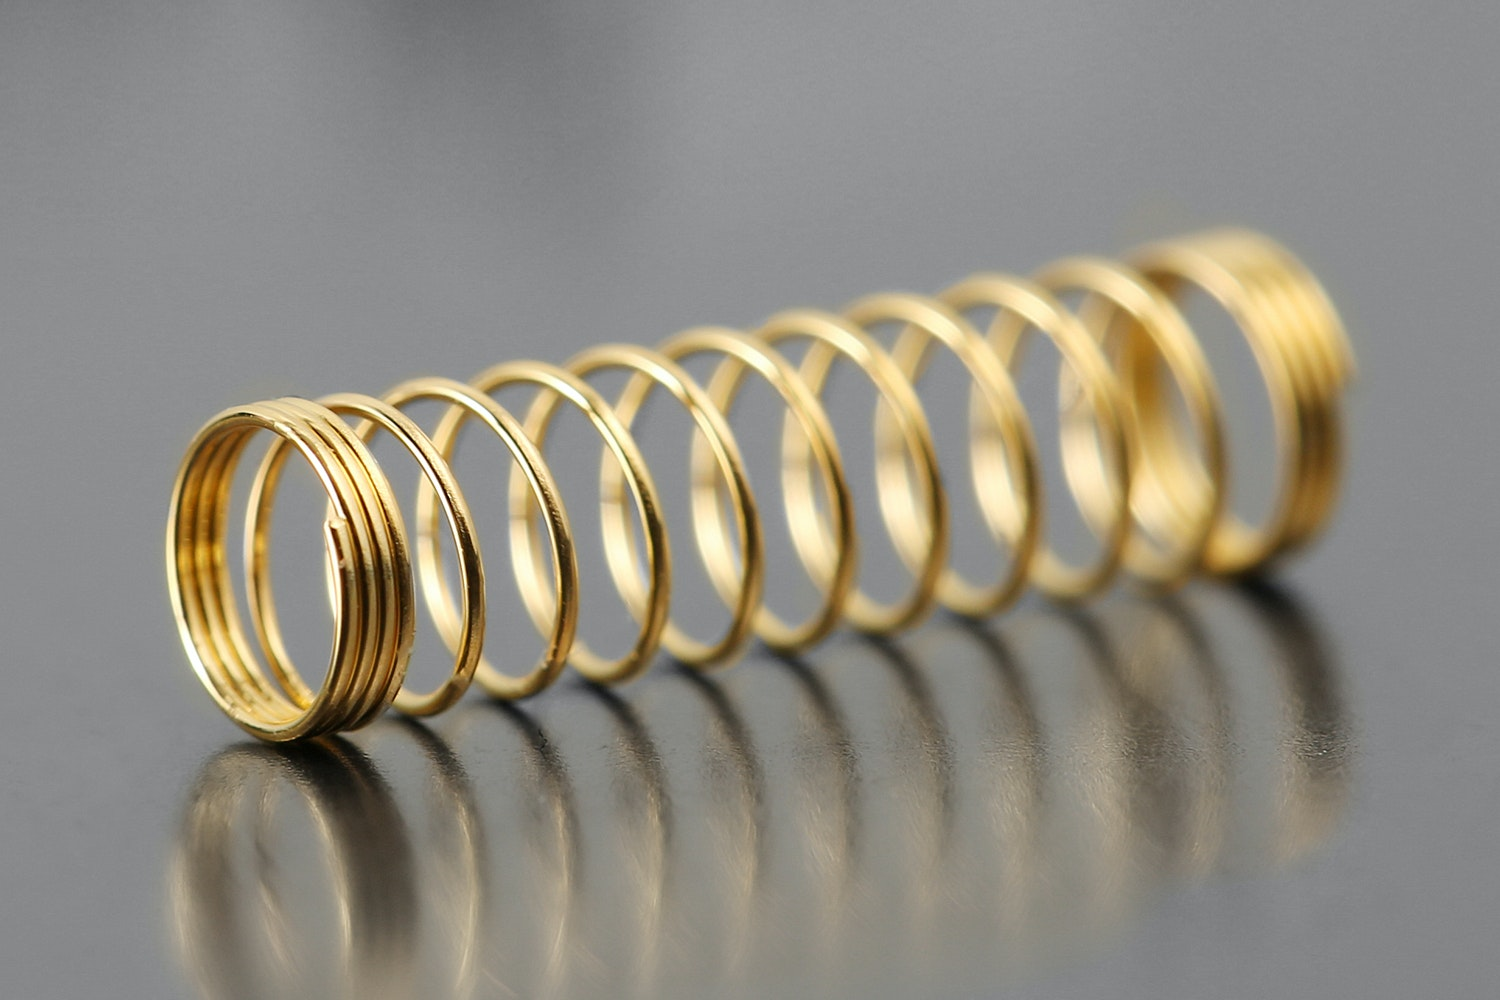 SPRiT 24K Gold-Plated Cherry MX Springs (100pcs)